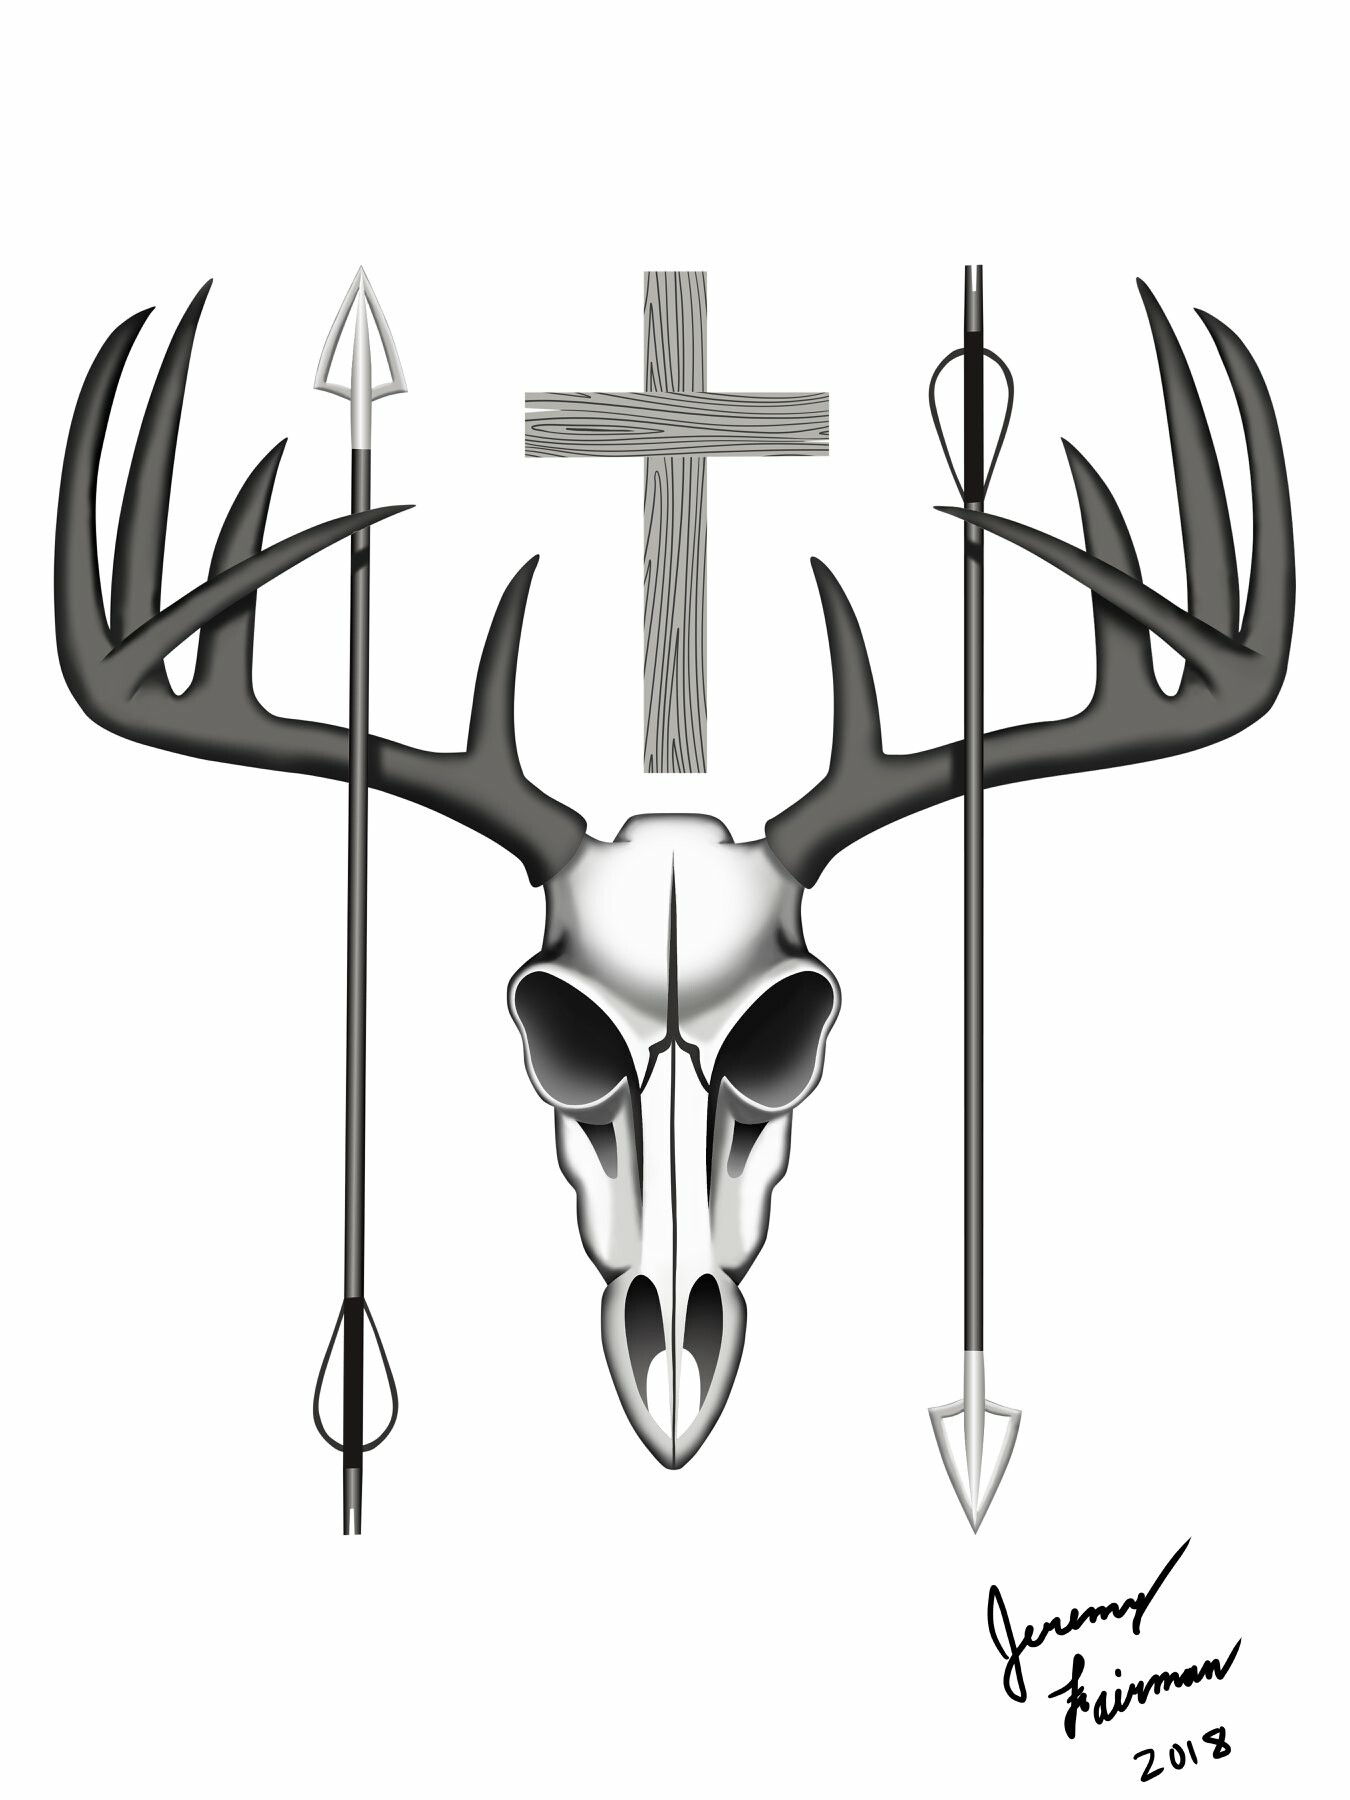 Jeremy Fairman Deer Skull Tattoo Design 2018